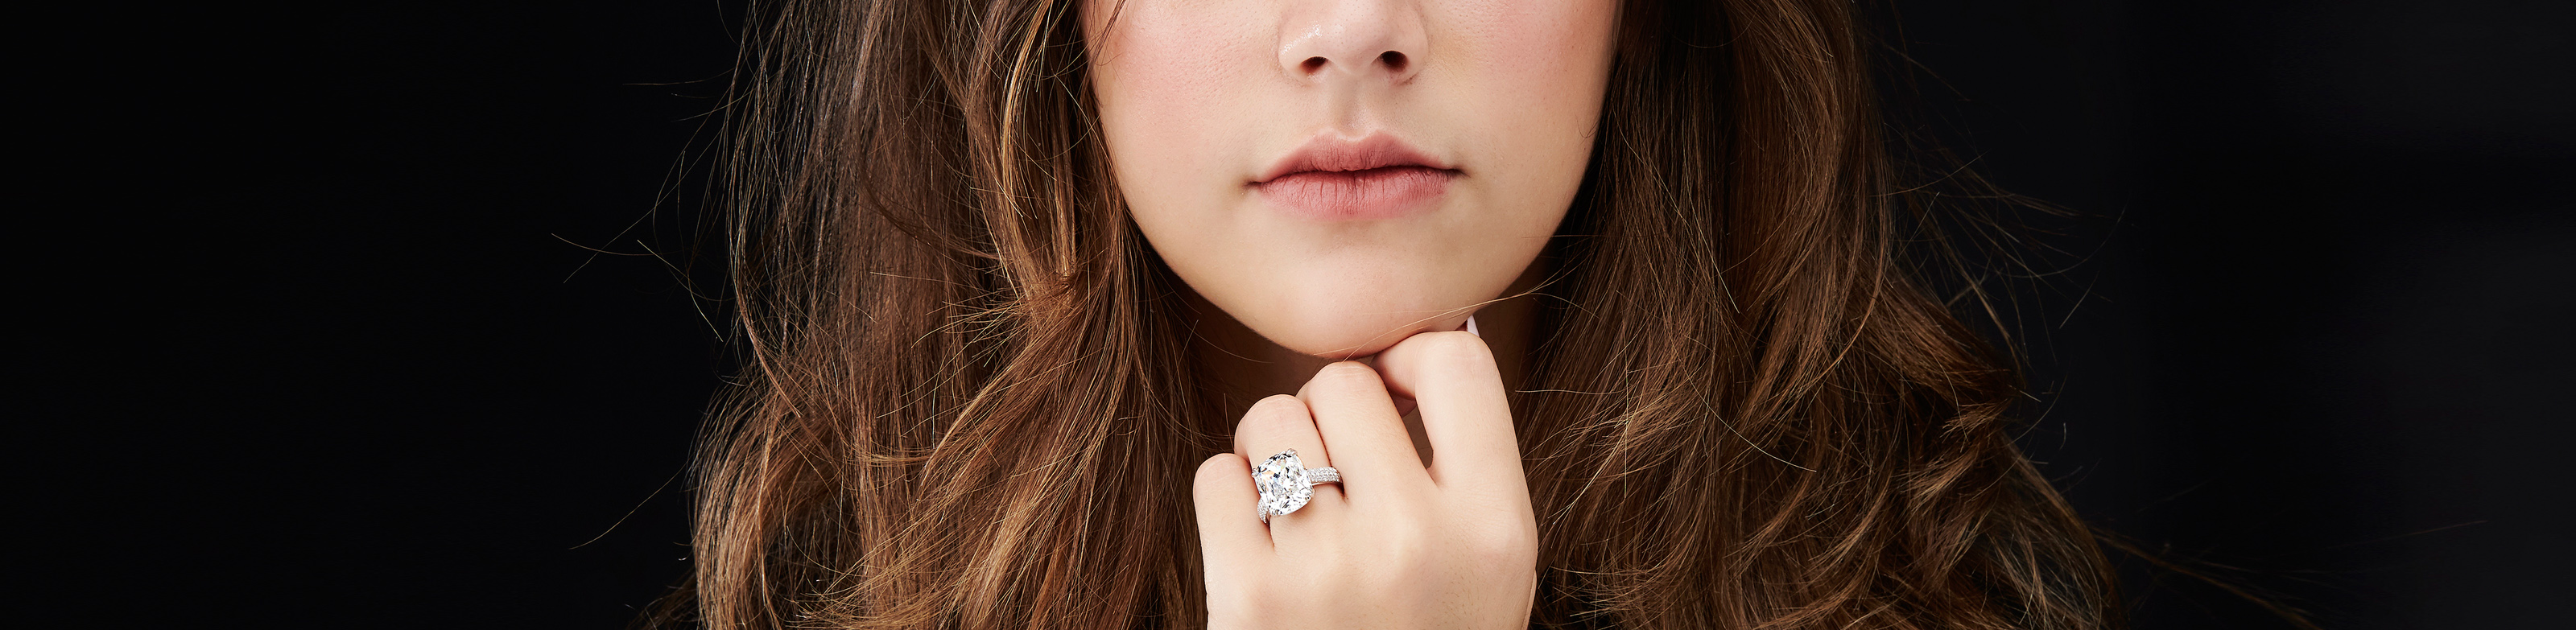 NEW ENGAGEMENT RINGS BY J FARREN-PRICE - AUGUST 2020 NEWS article hero image